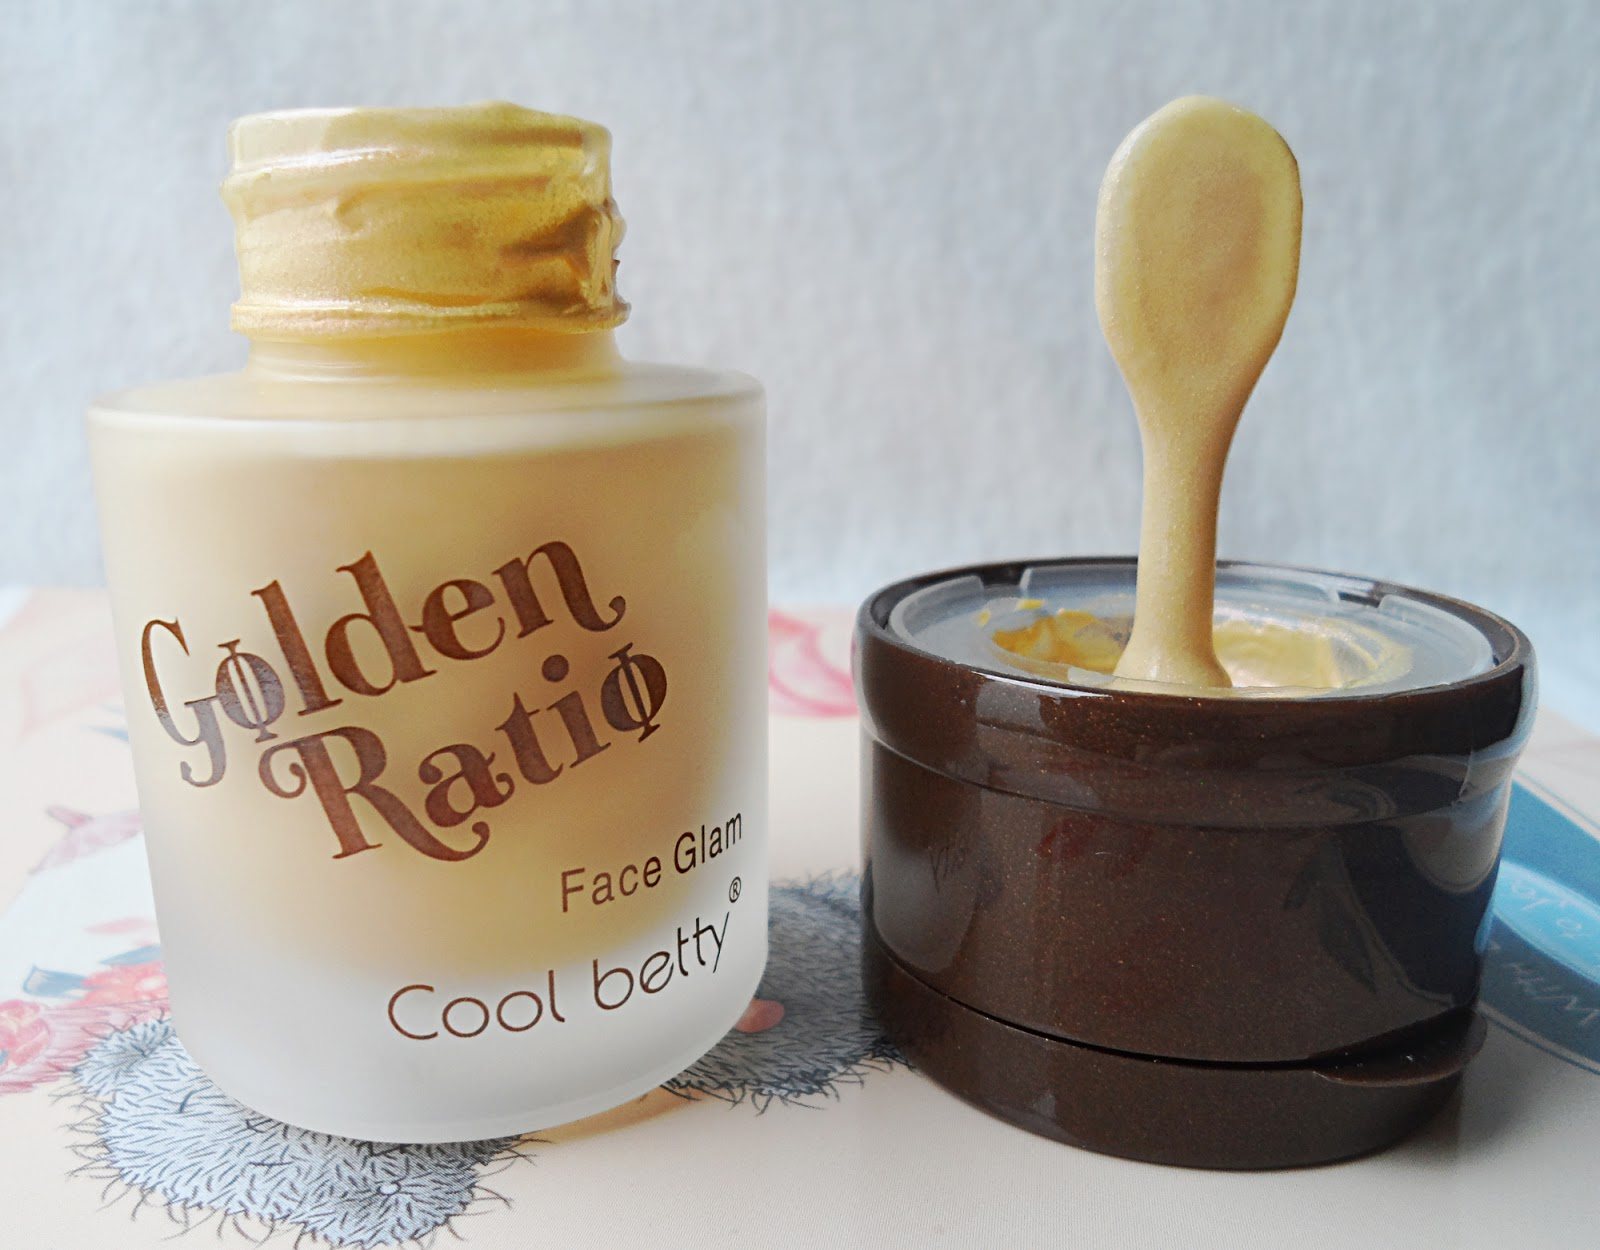 Golden Ratio Liquid Highlighter born pretty store coupon code beauty review blogger liz breygel